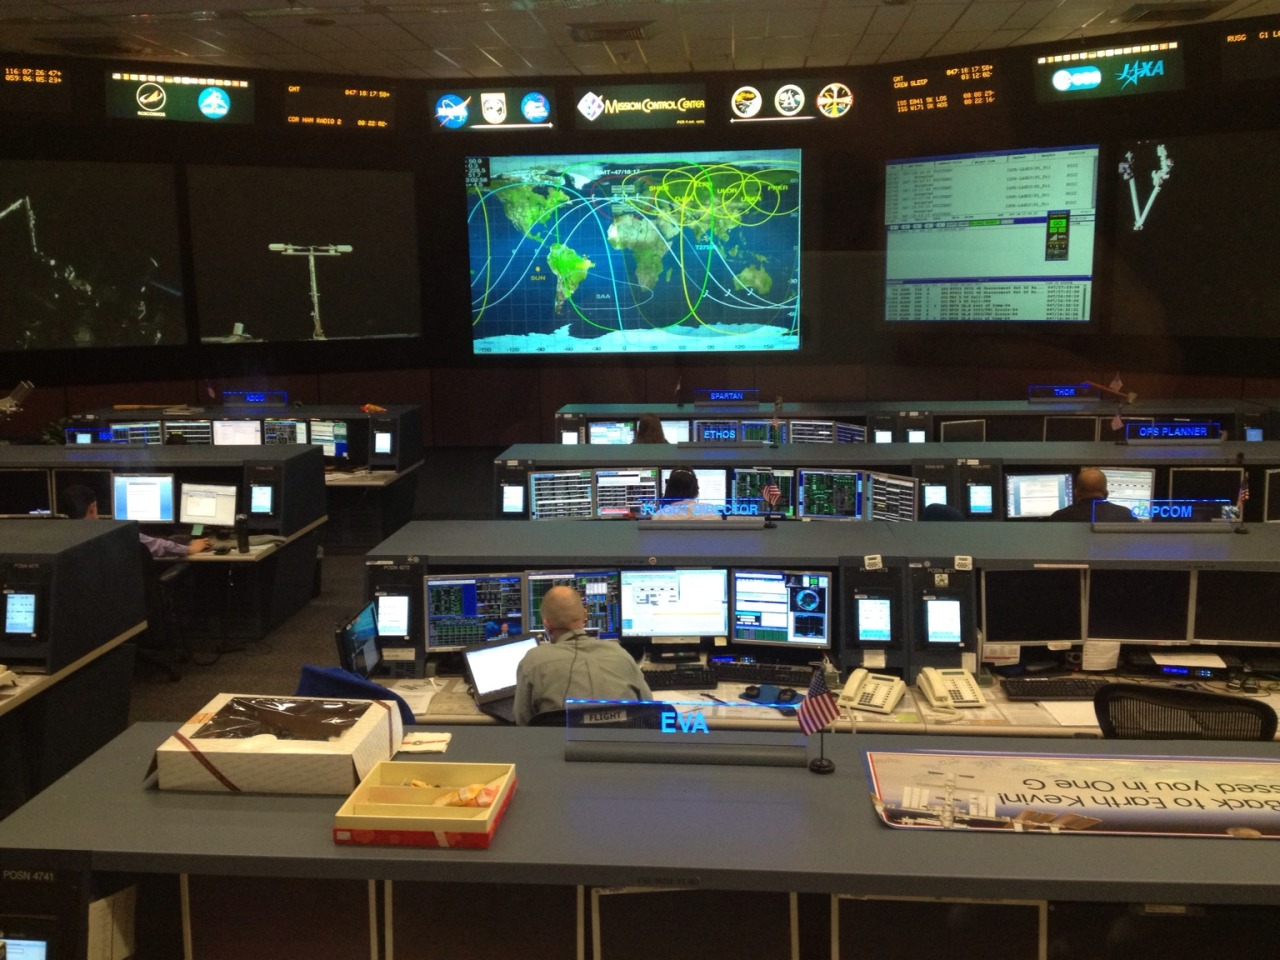 Checking out @NASA Mission Control. So cool!! at Space Center Houston – View on Path.